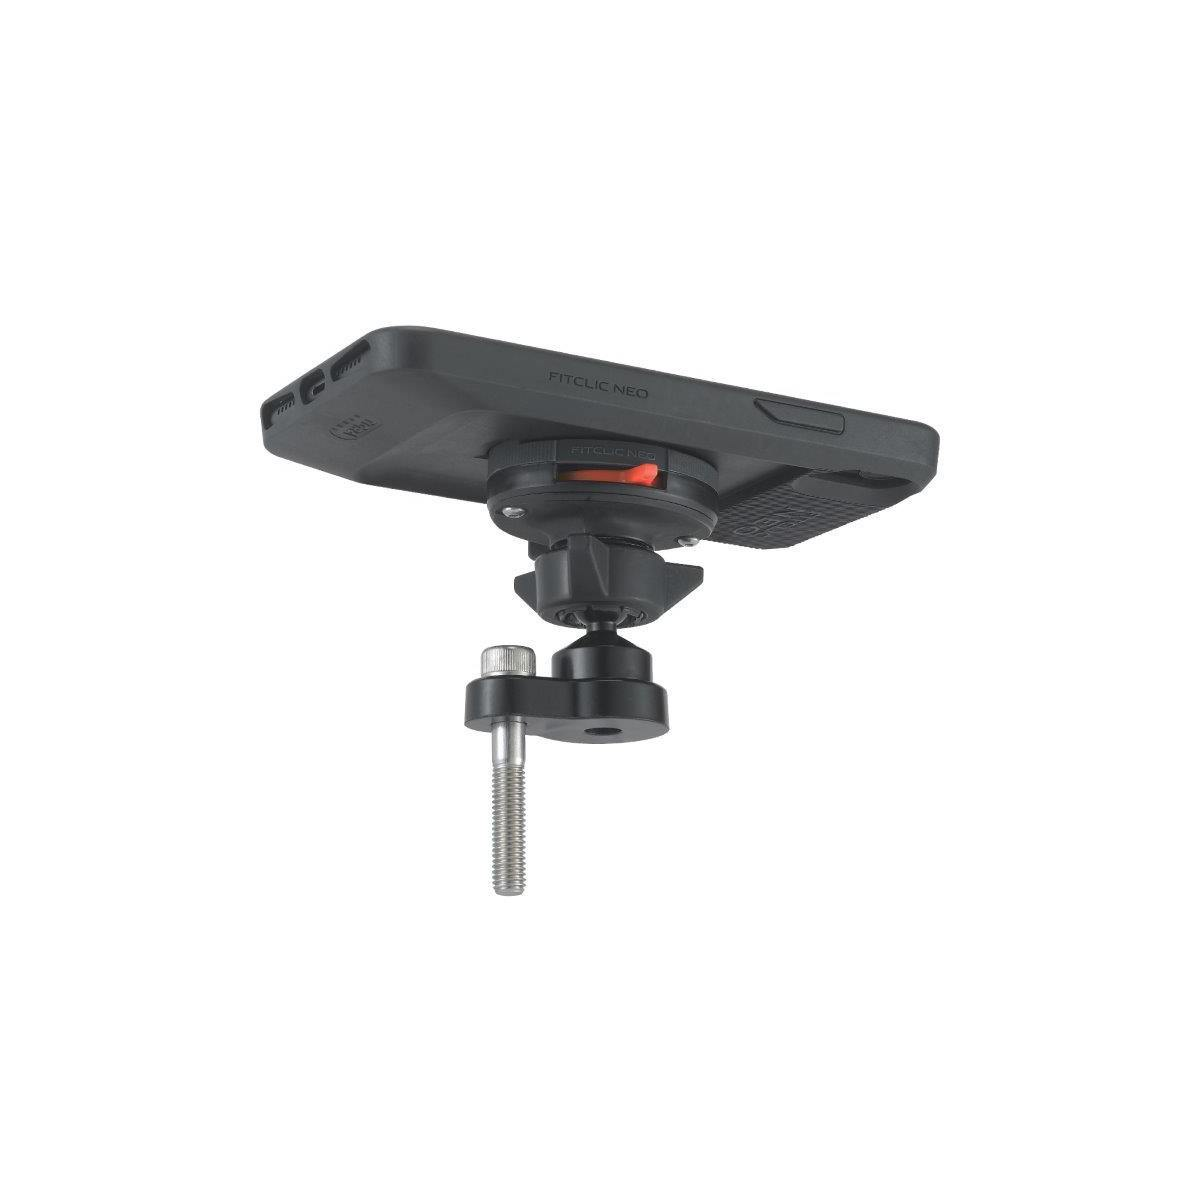 "FitClic Neo Motorcycle Pin Mount Kit for iPhone 12 Mini (5,4"") - BuyBits Ltd UK"